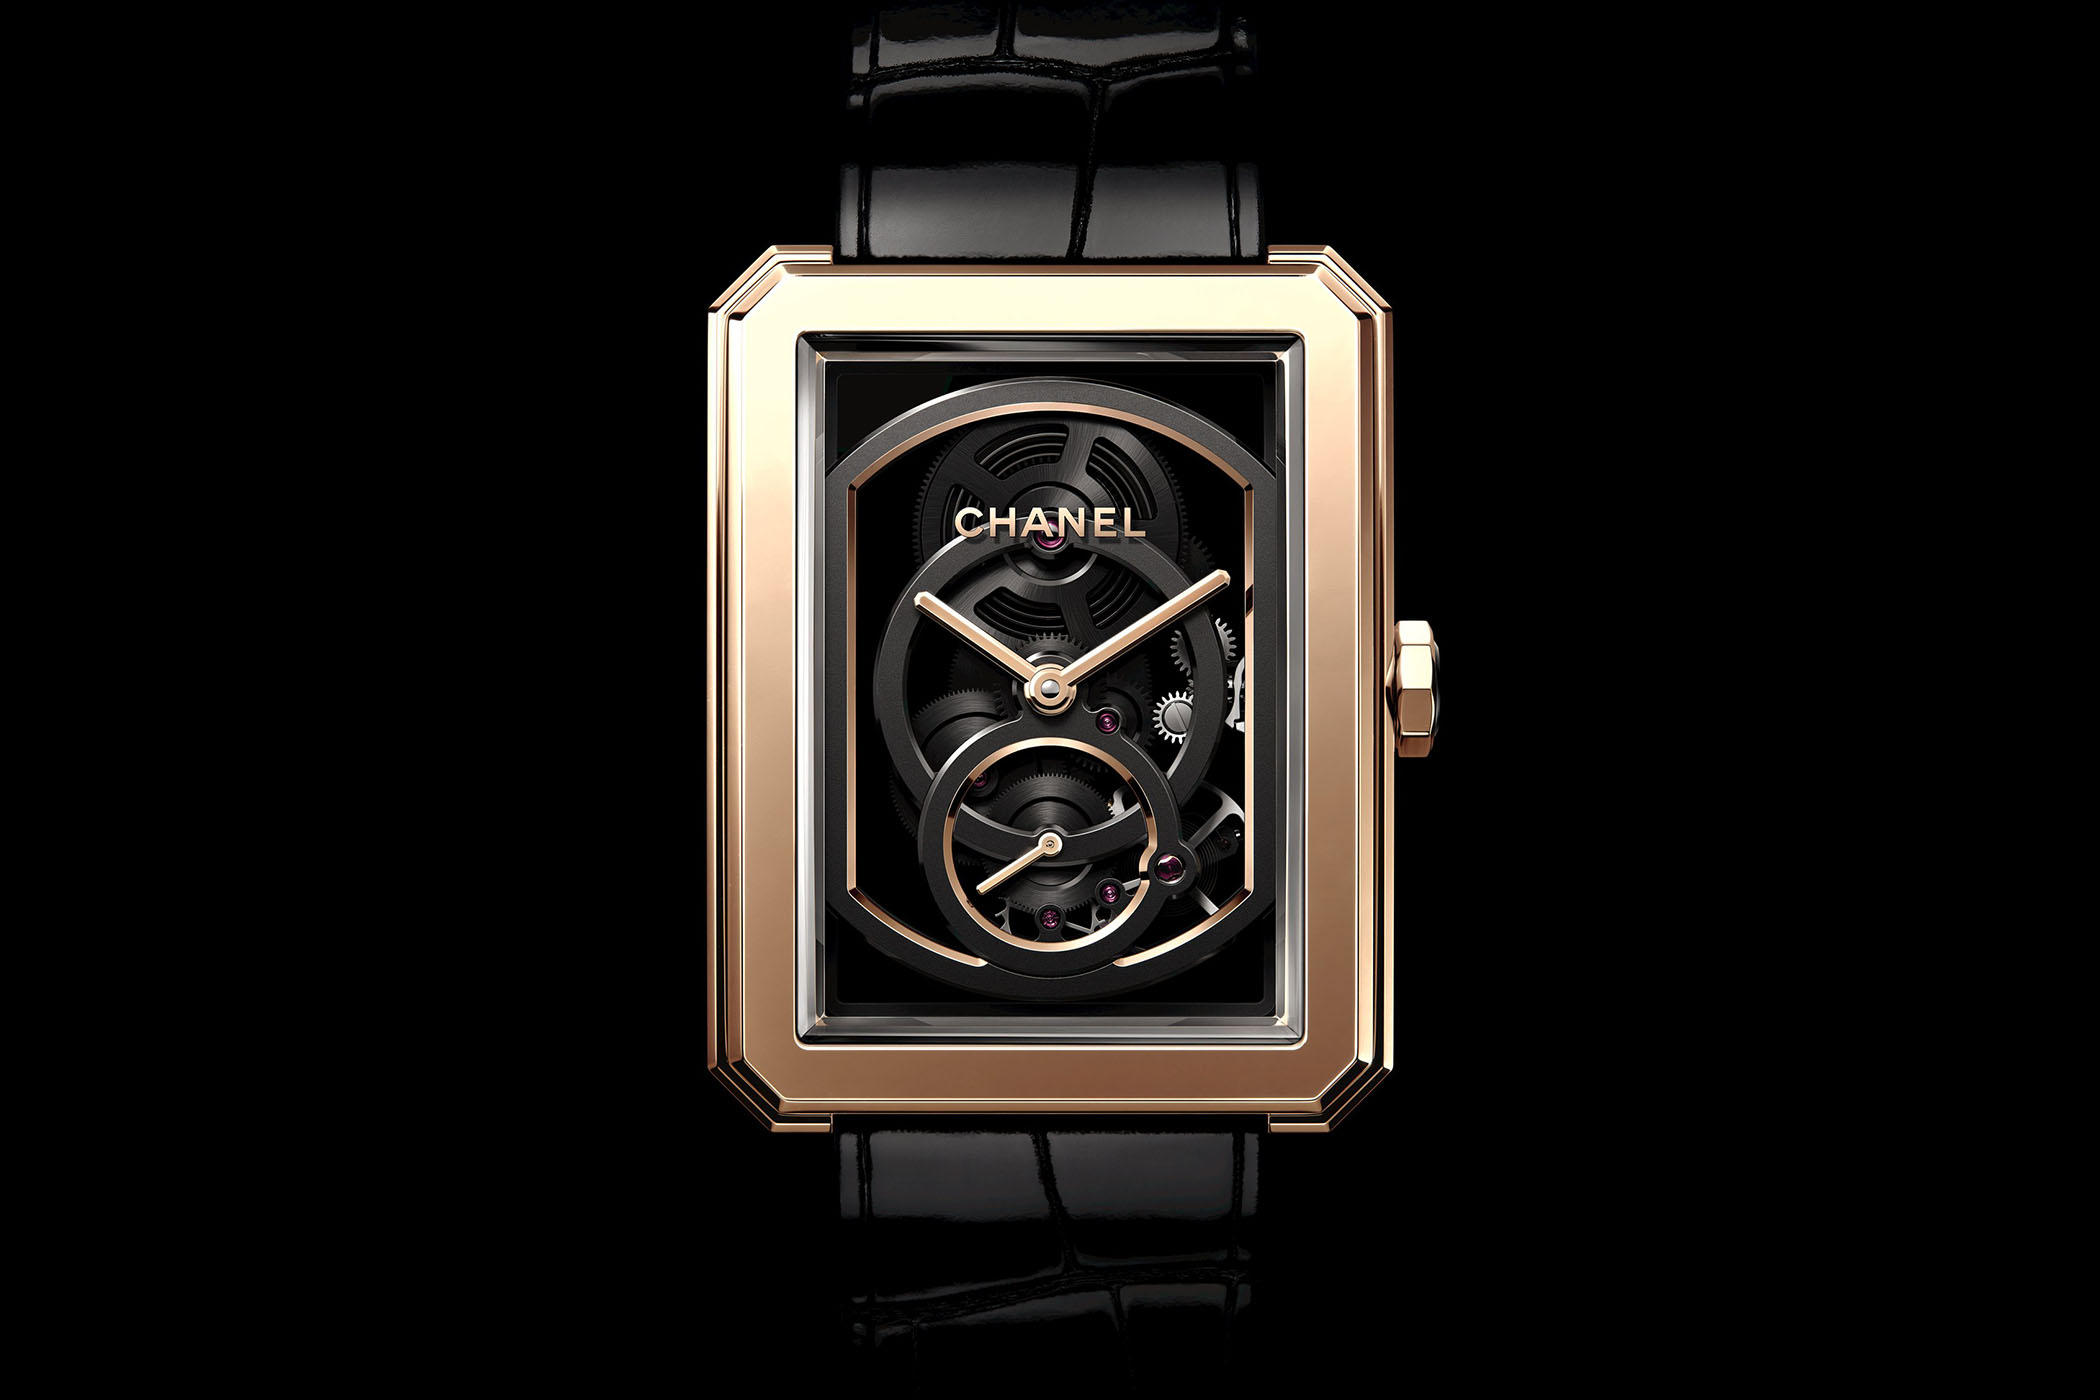 Chanel Boy-Friend Squelette - Baselworld 2018